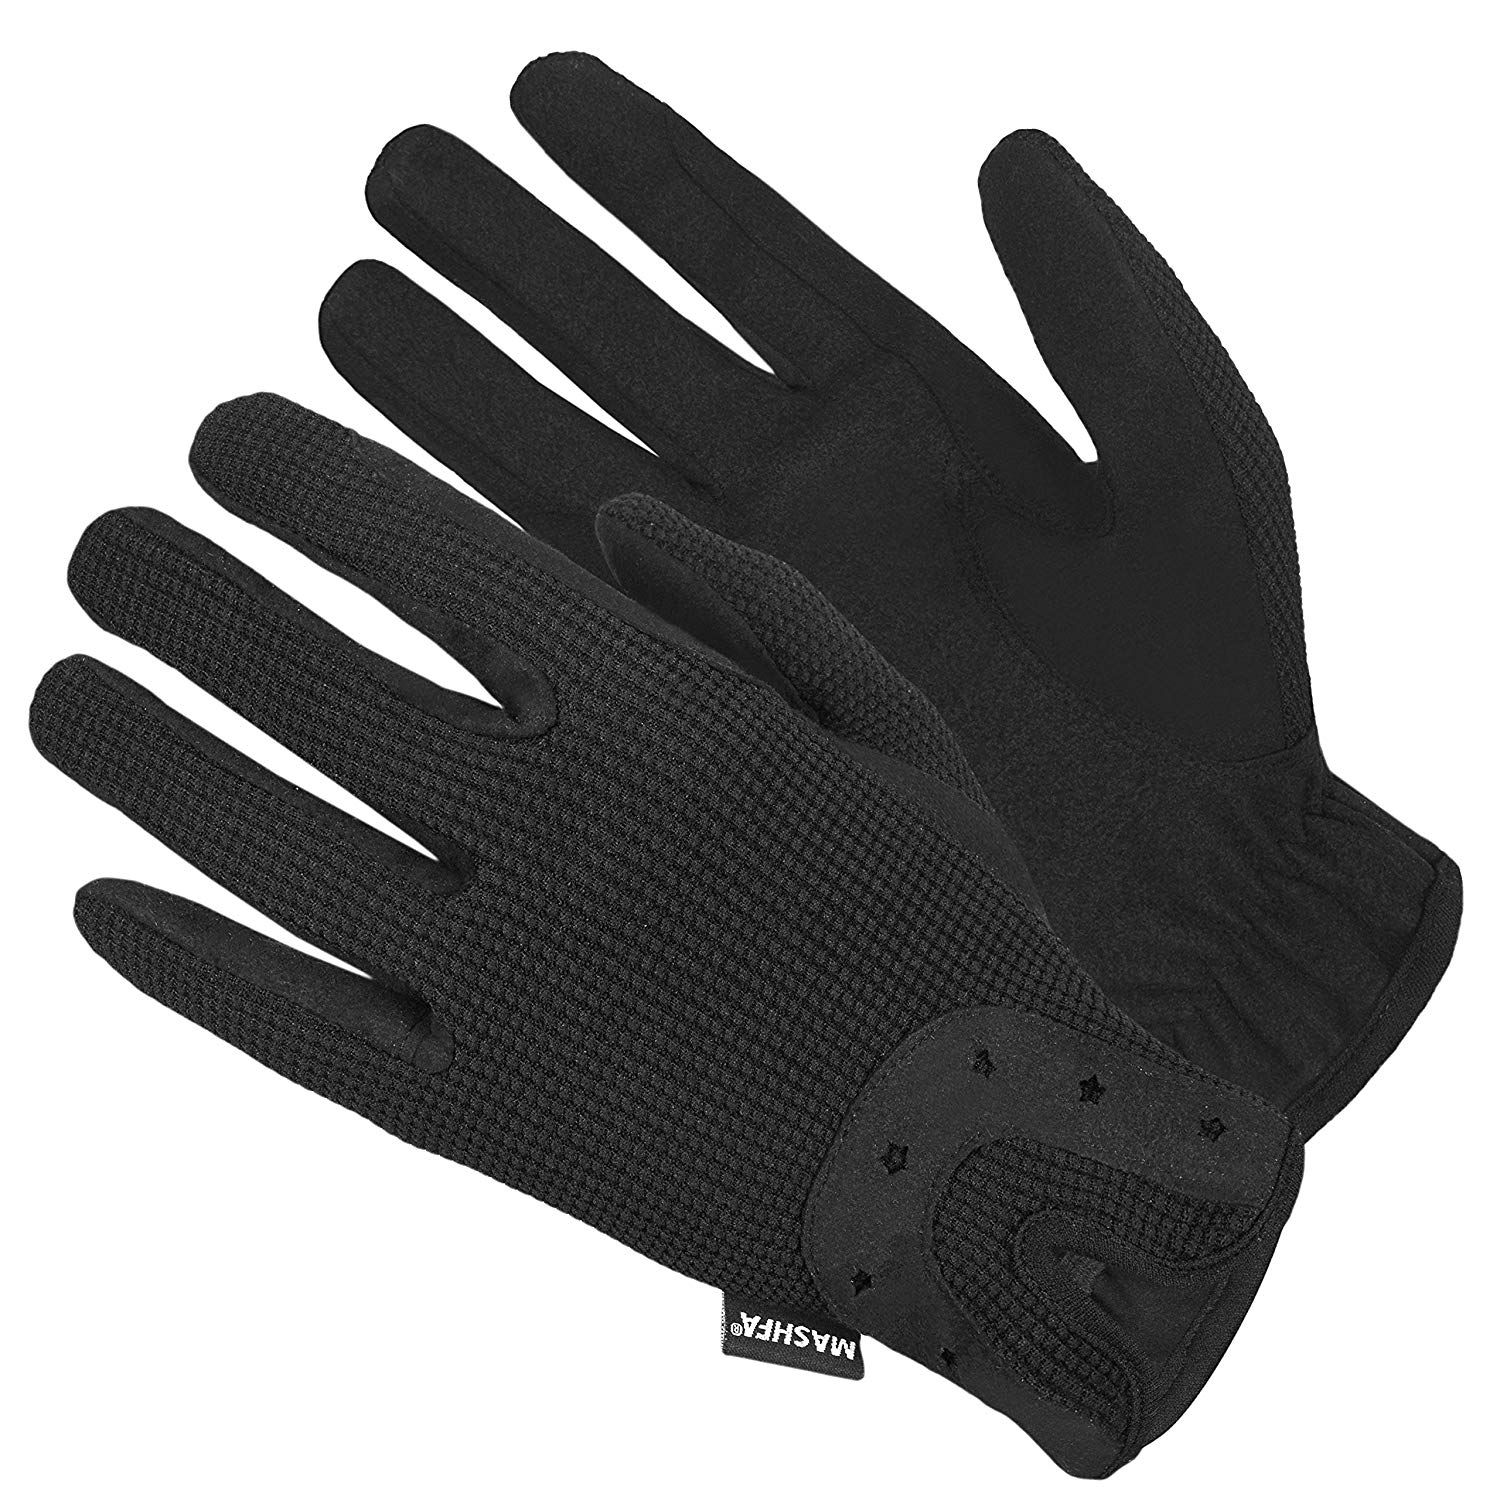 Light Weight Ladies Horse Riding Gloves Comfortable Daily Use Horse Riding Gloves Stretchable Fabric Bac Riding Gloves Horse Riding Gloves Horse Riding Clothes